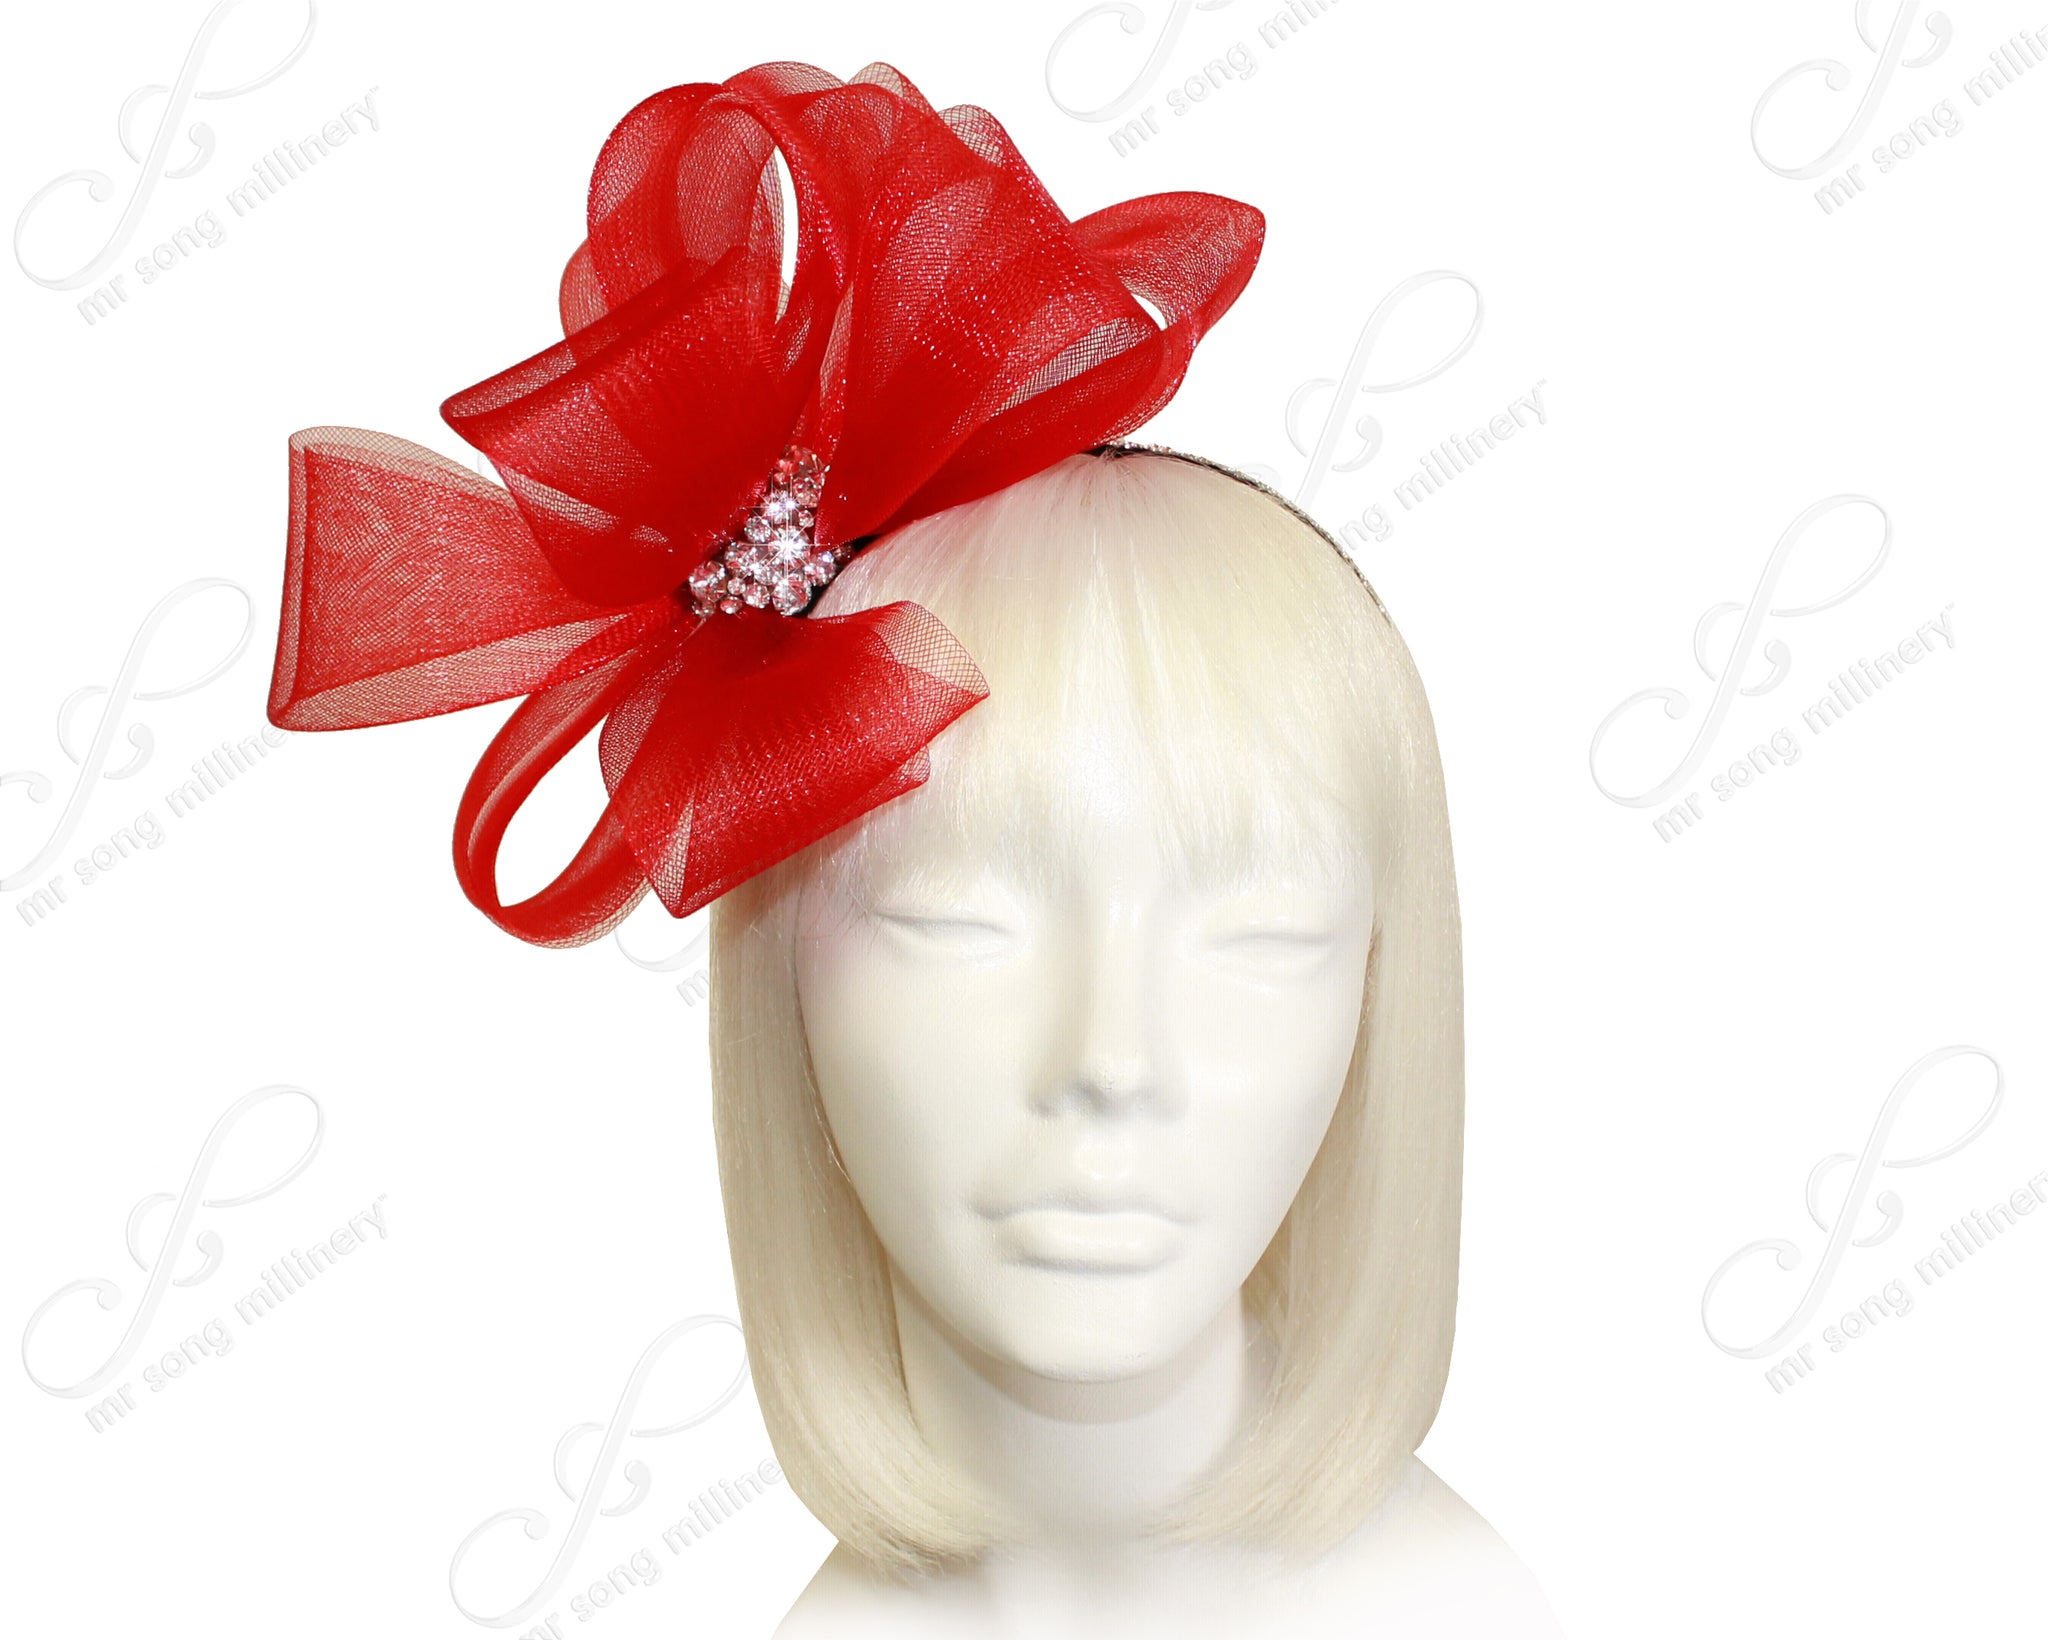 Mr. Song Millinery All-Season Crin Fascinator With Signature Accents - Red